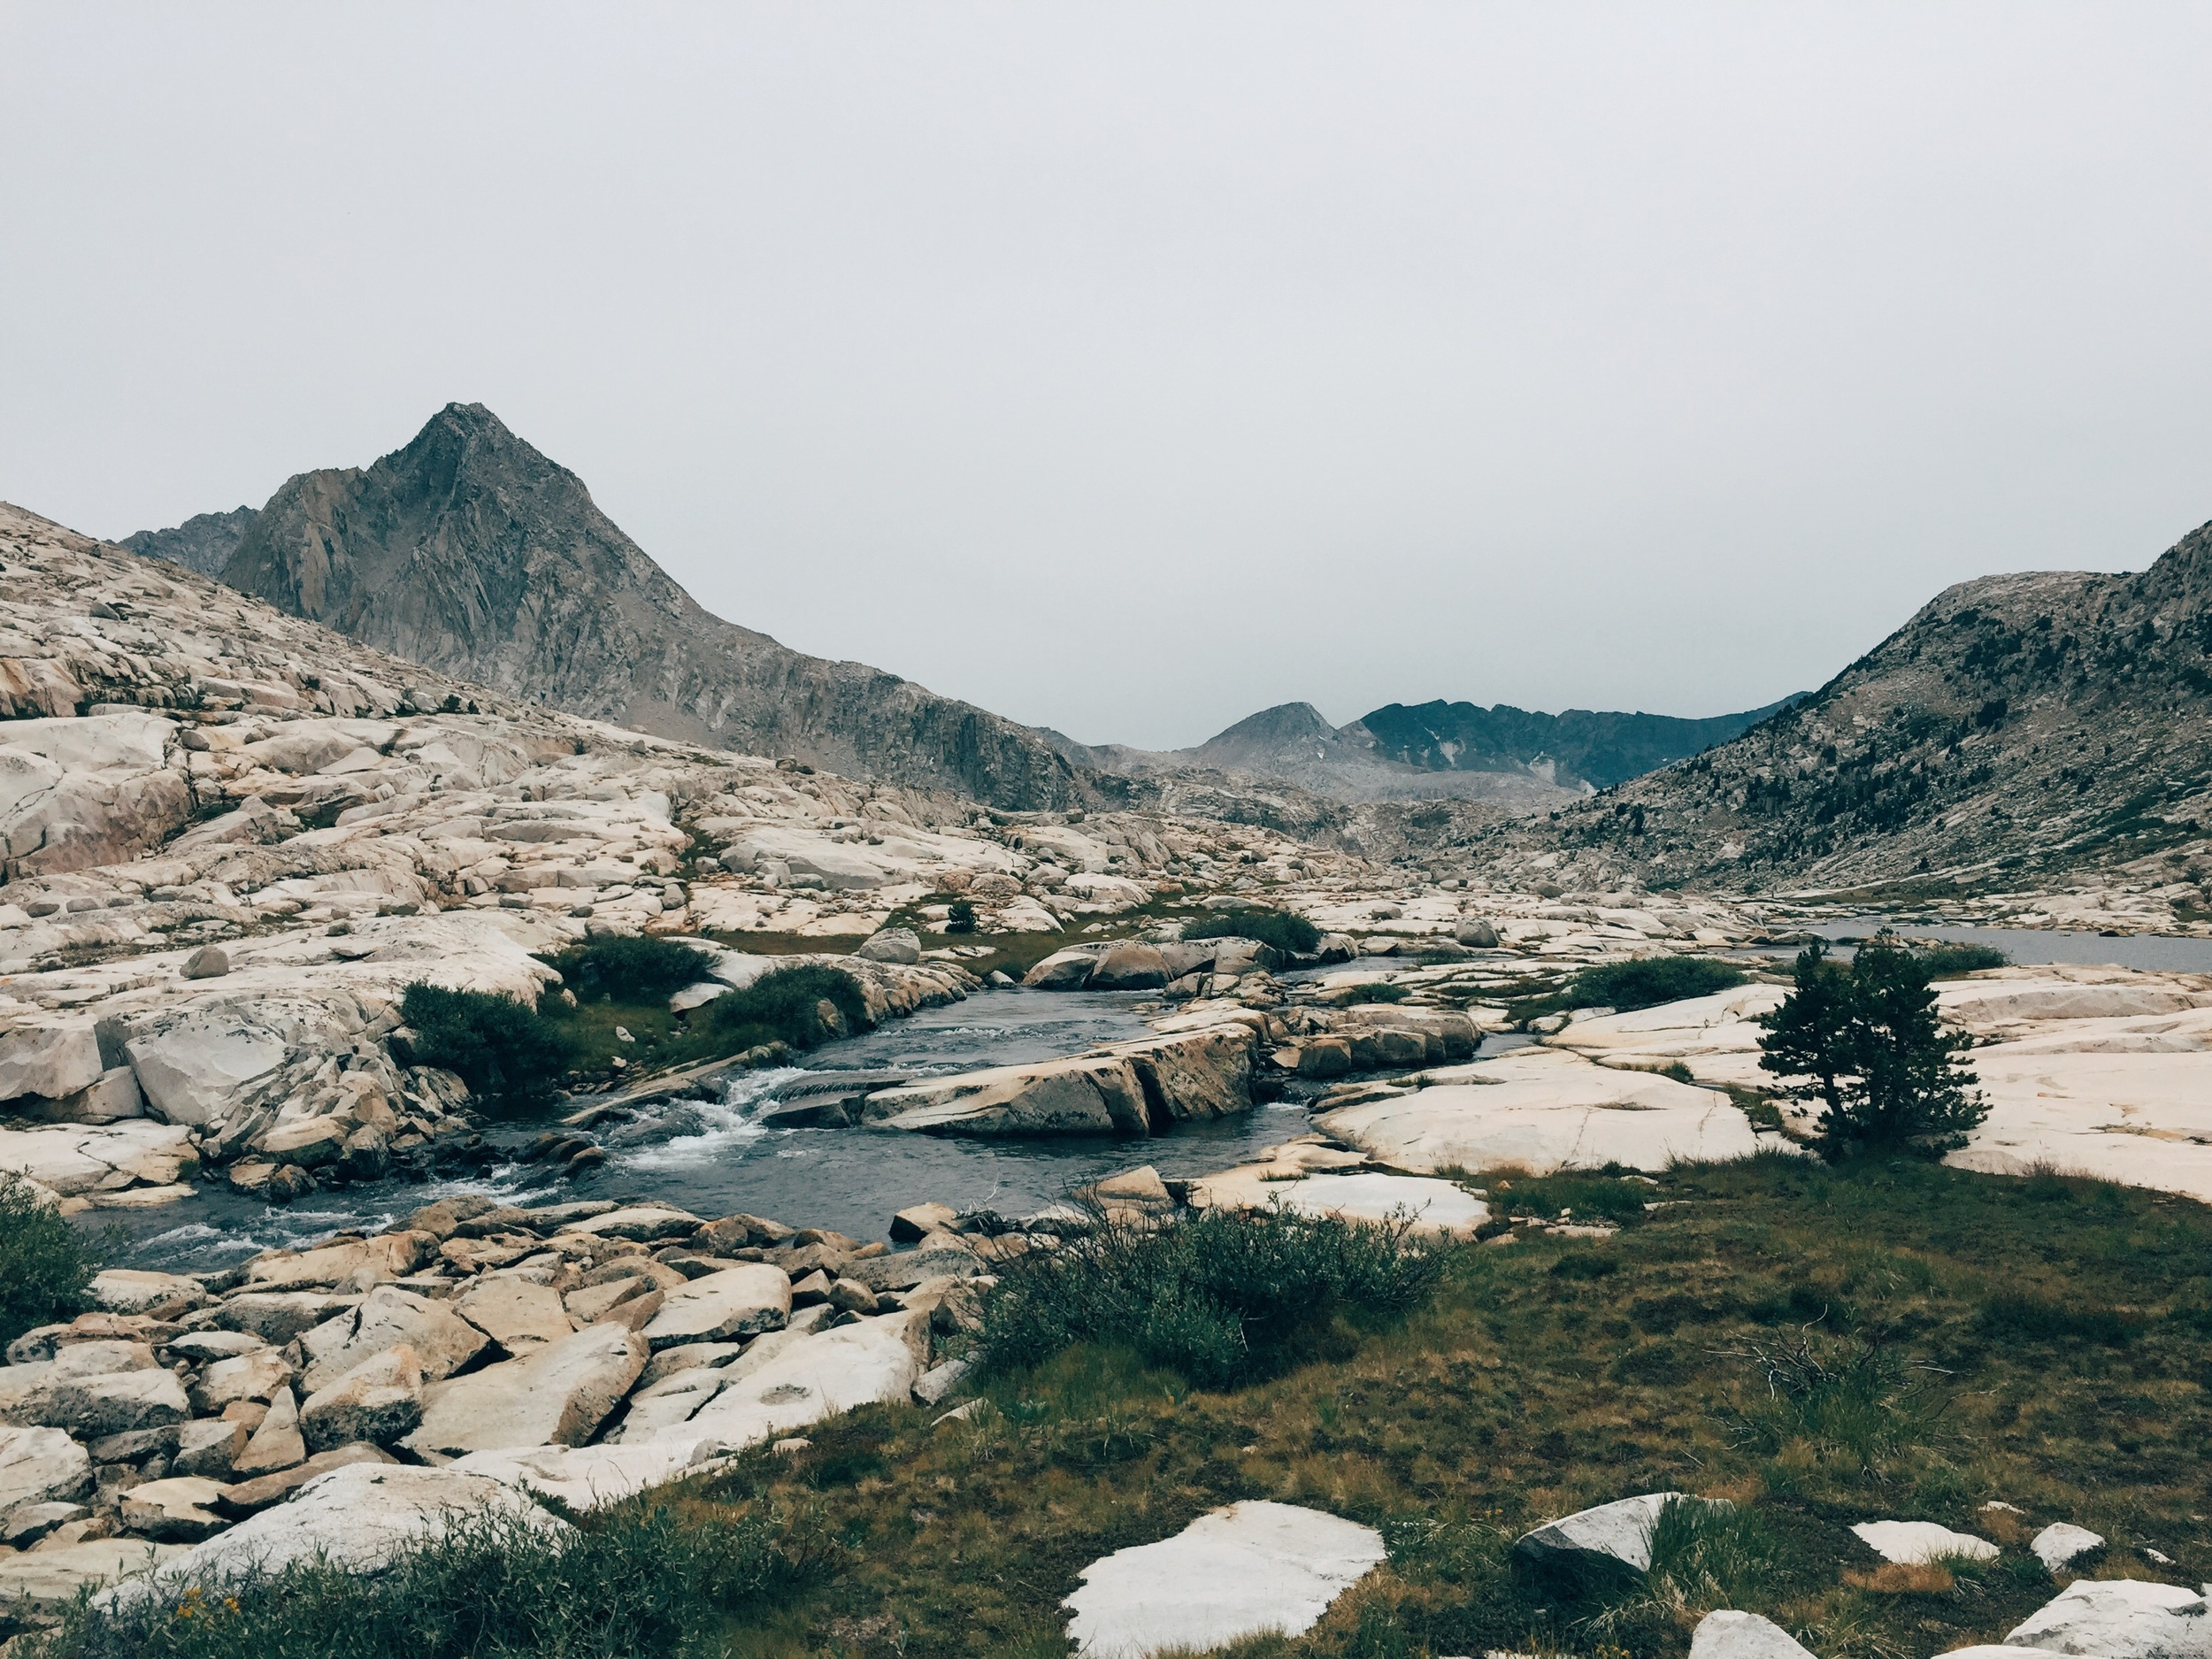 Hiking under gray skies in the jaw-dropping beauty of Evolution Valley.